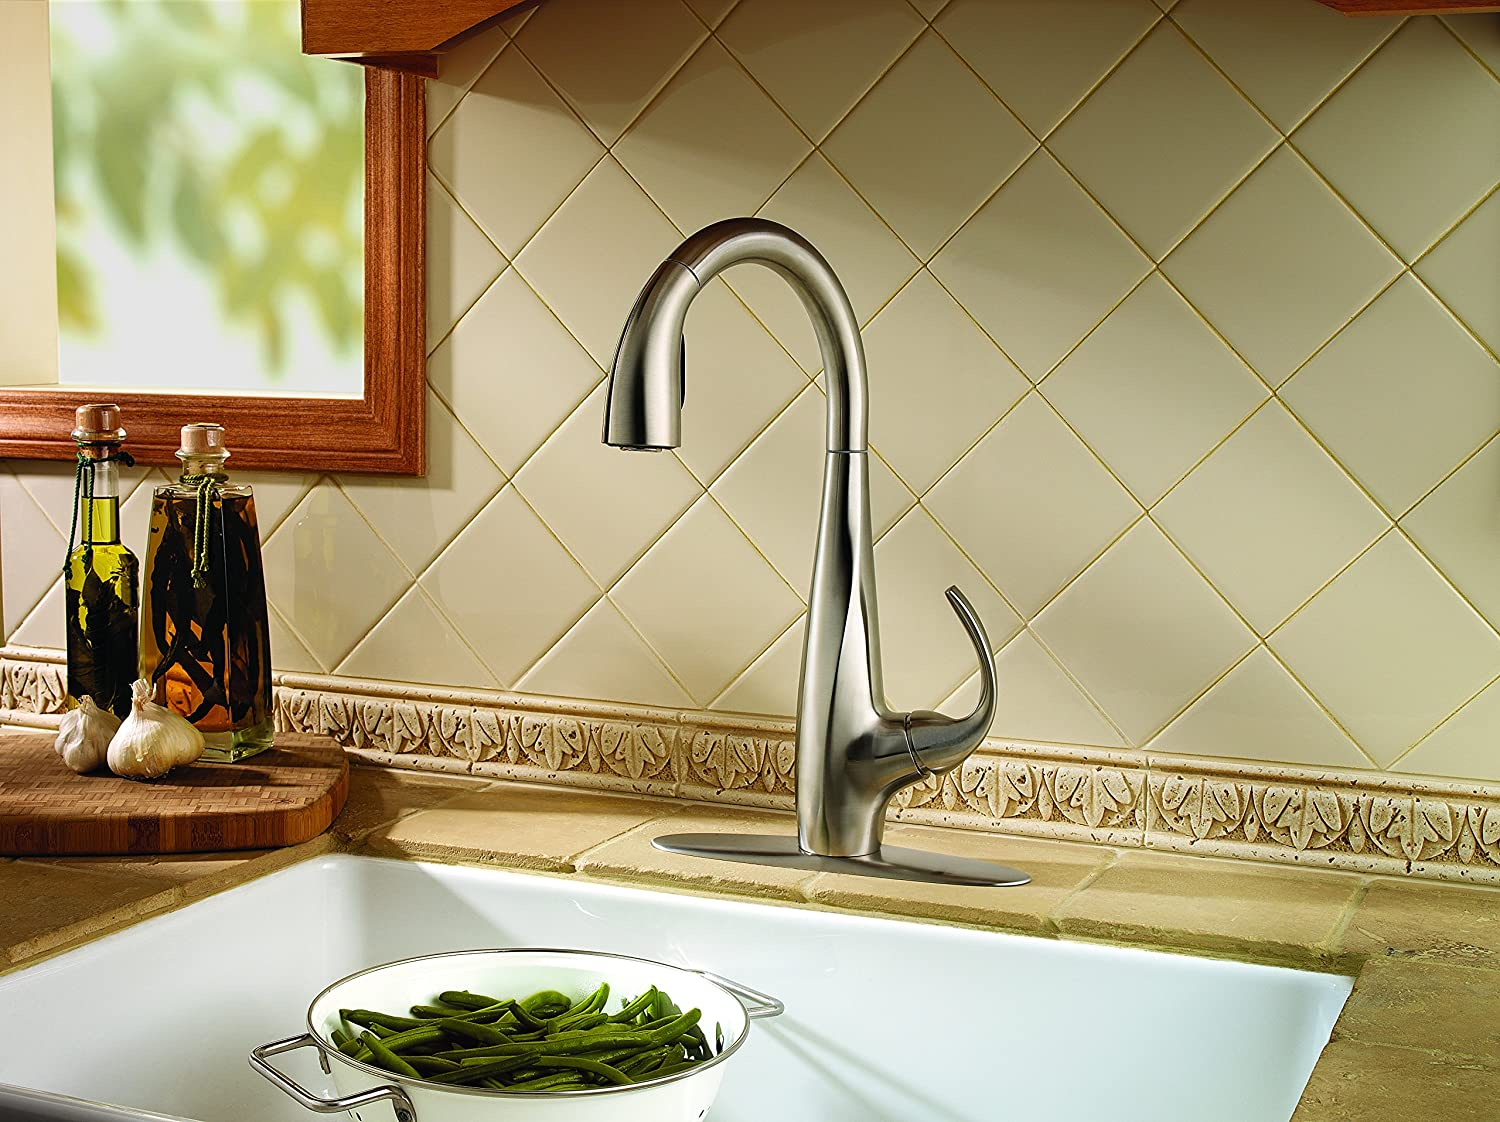 Pfister F 529 7ANS Avanti 1 Handle Pull Down Kitchen Faucet, Stainless  Steel, 2.2 Gpm   Touch On Kitchen Sink Faucets   Amazon.com